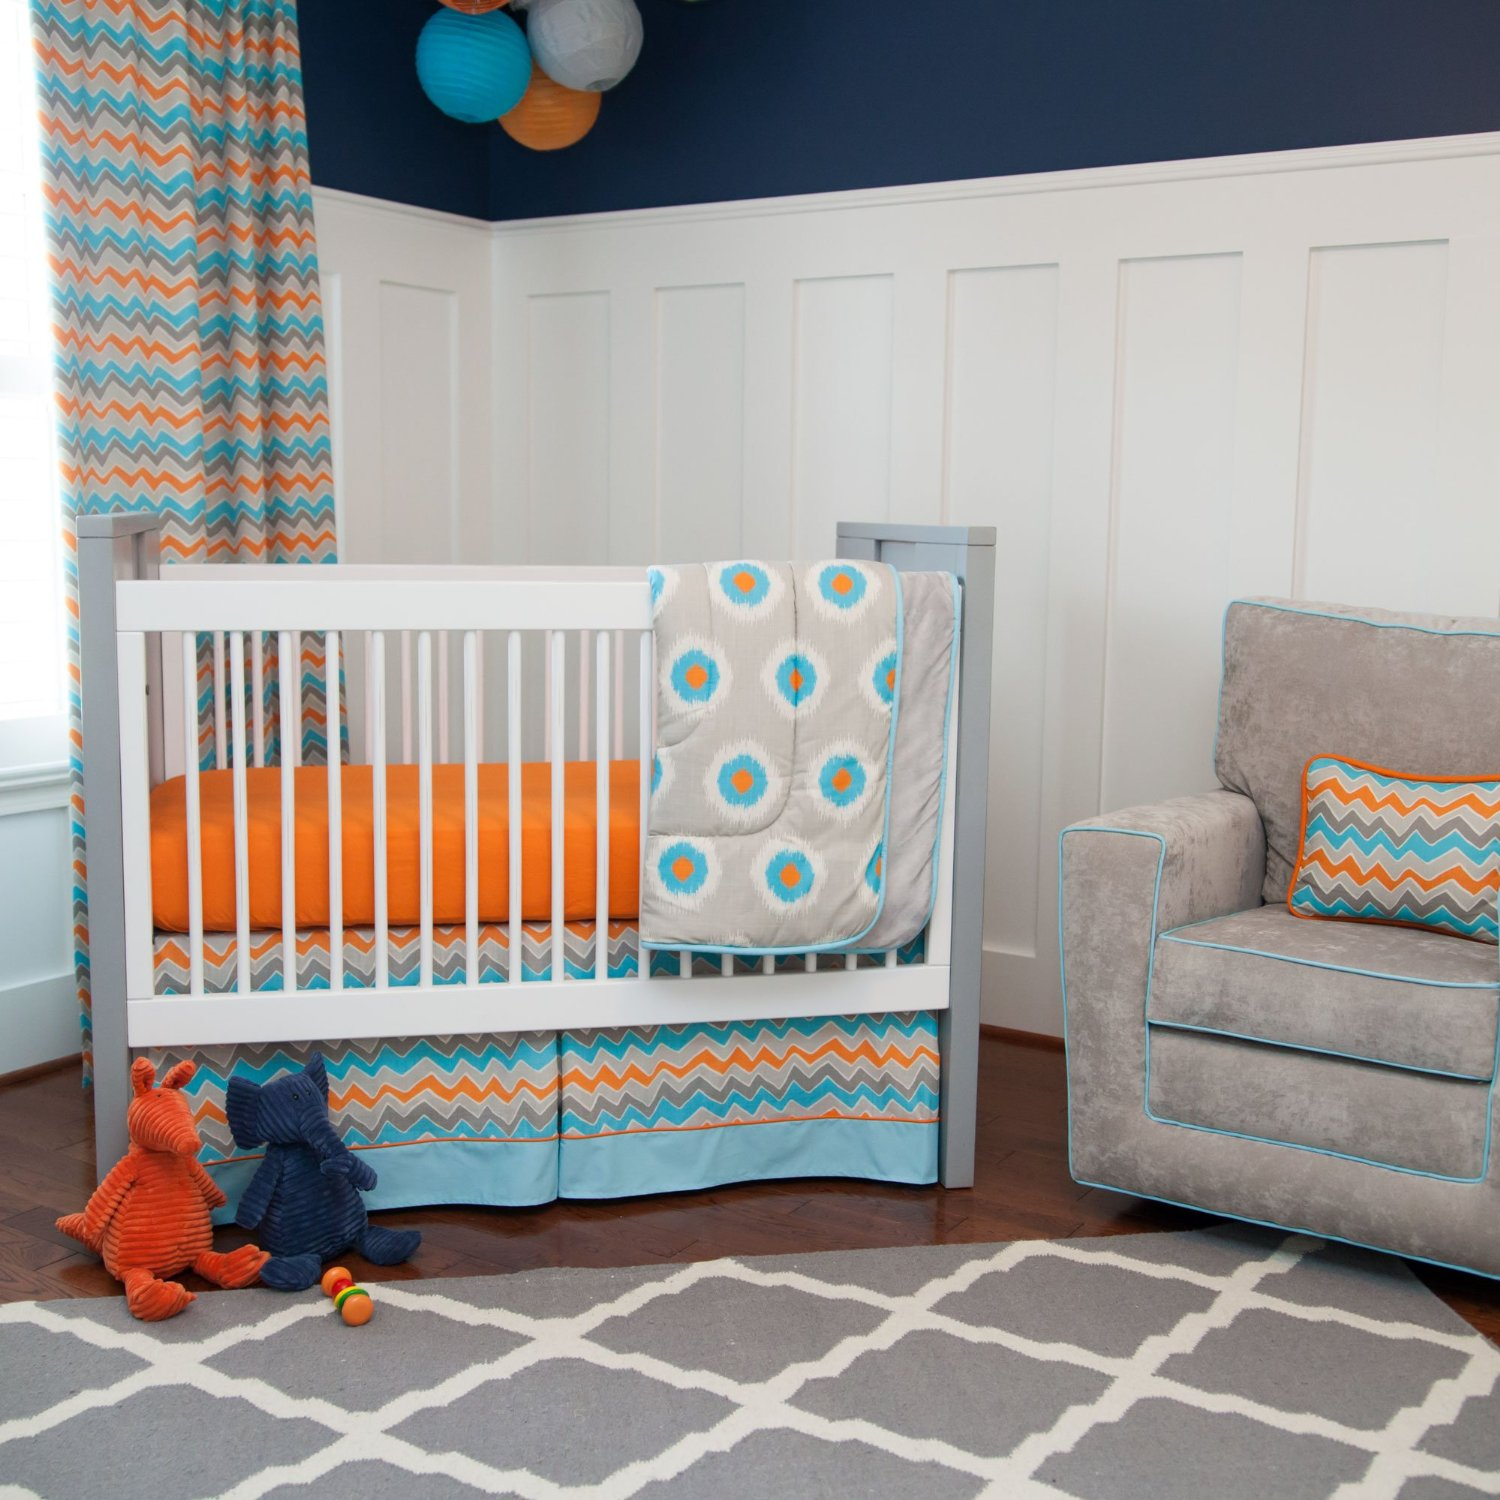 total fab blue and orange nursery crib sets  bedding for baby  - pc luxury mini crib bedding orange and blue